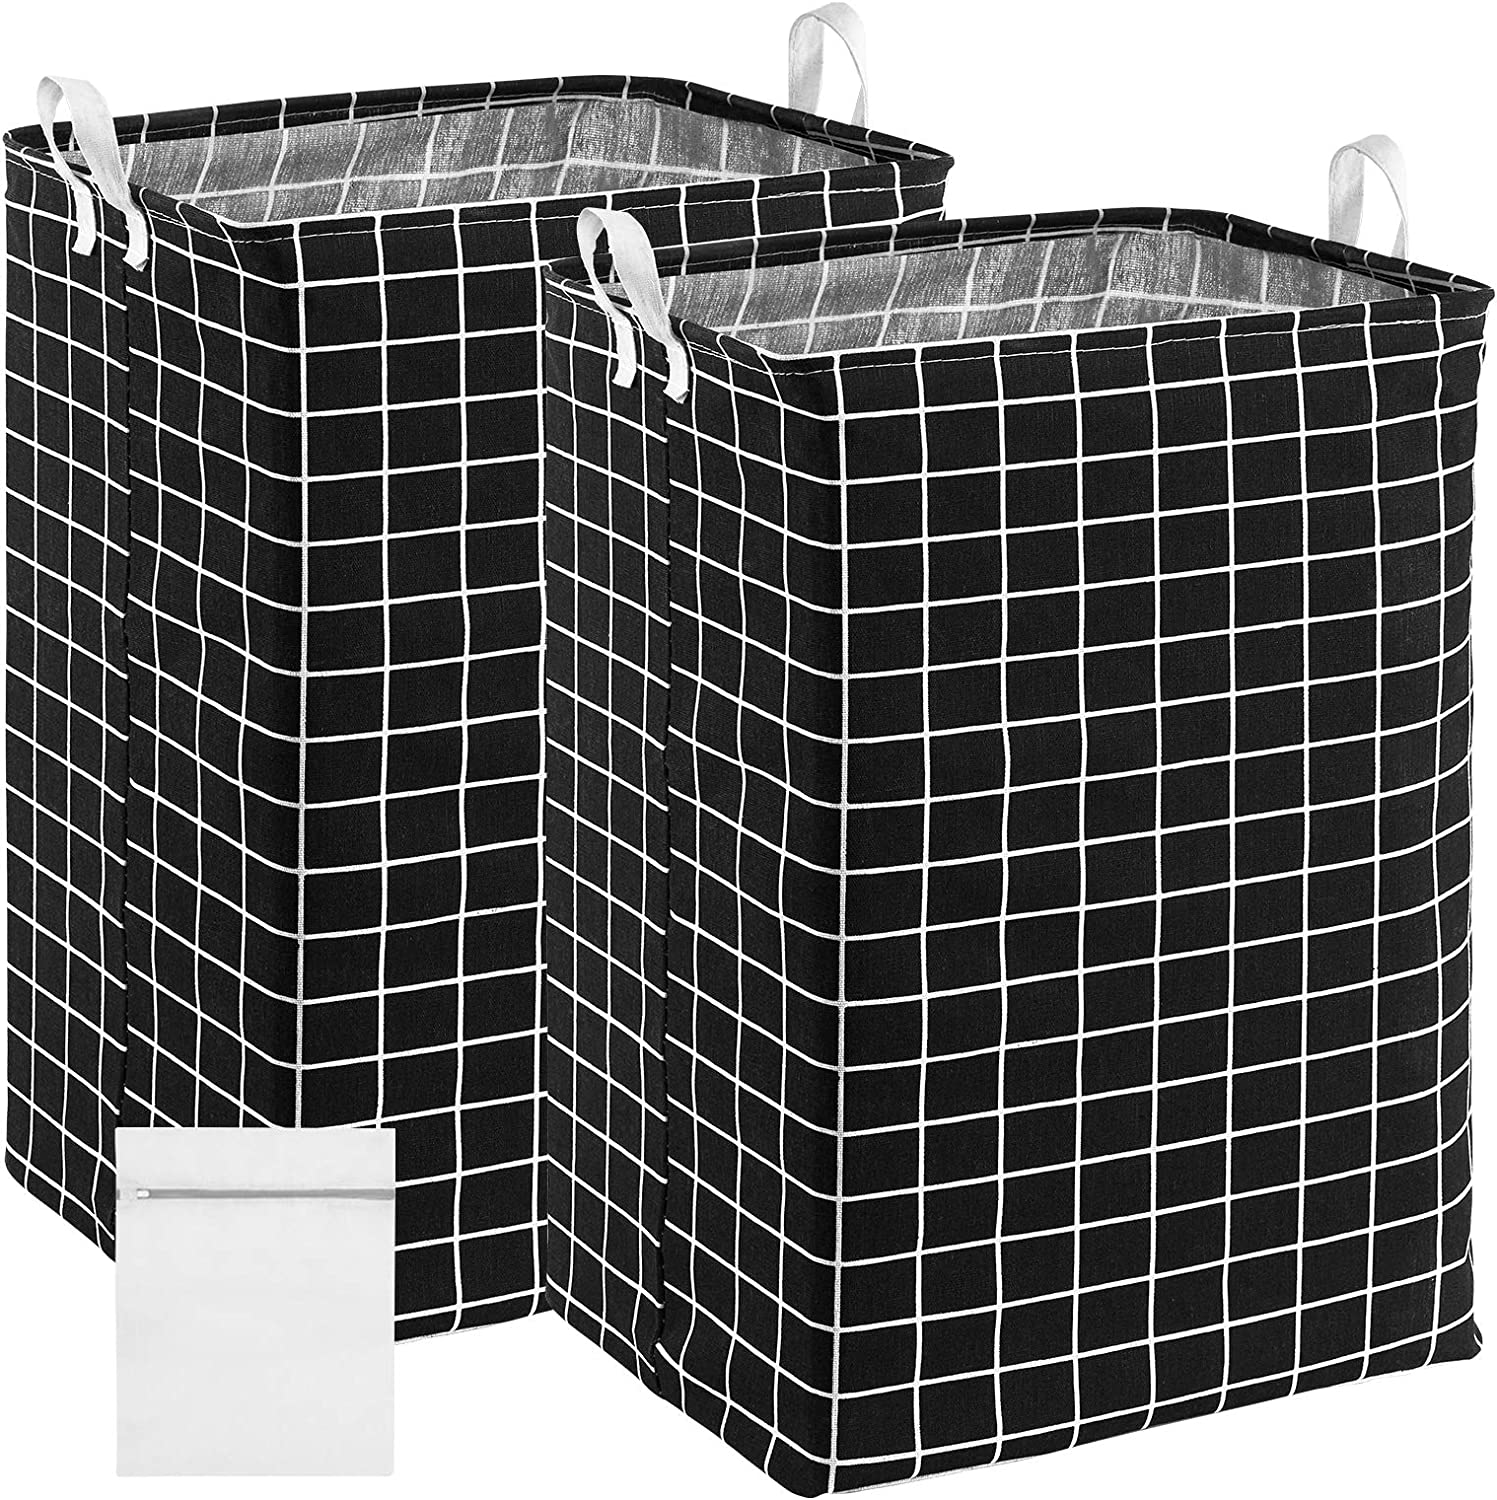 X-Large Black Linen Hampers with Handles Come with Laundry Bag Bonus CALIVO 72L Laundry Baskets 2 Pack Well-Holding Foldable Storage Bins for Clothes Toys Nursery Organization